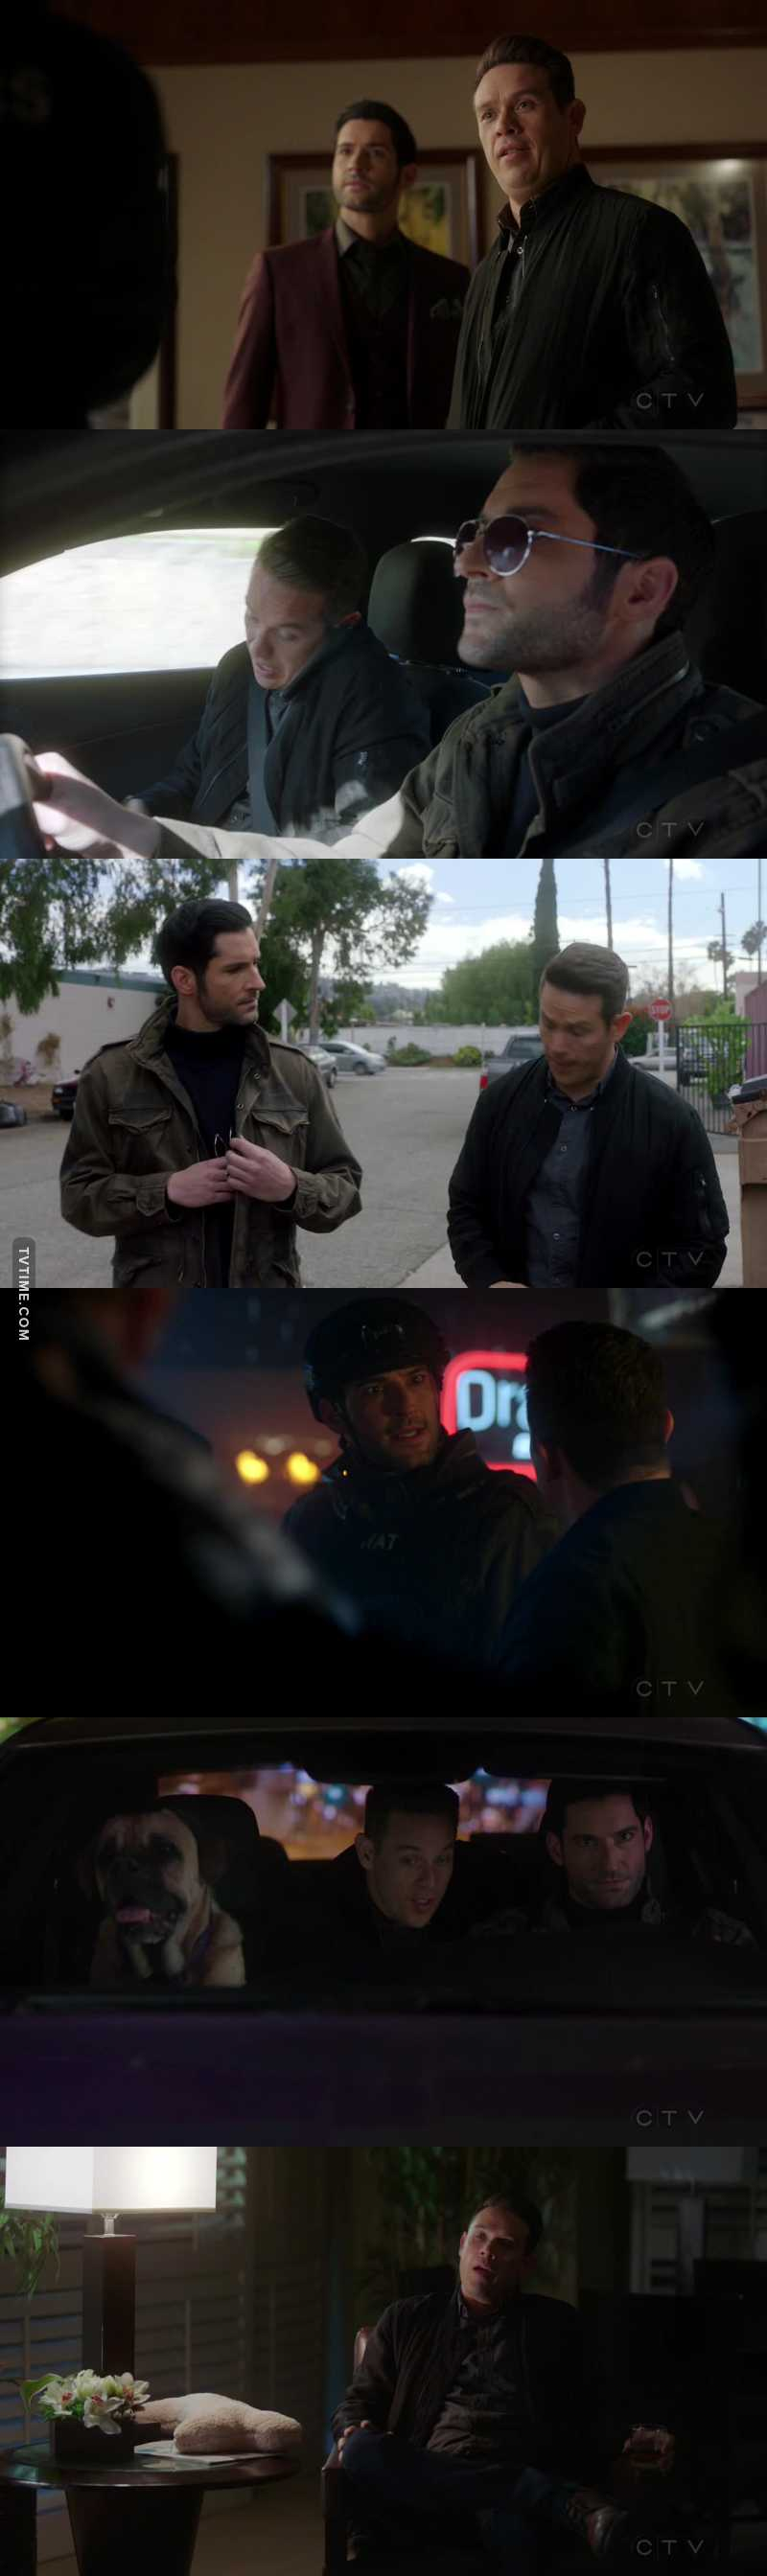 I know this episode is about Lucifer and his feeling for Chloe, but can we please appreciate Douchifer for a minute?